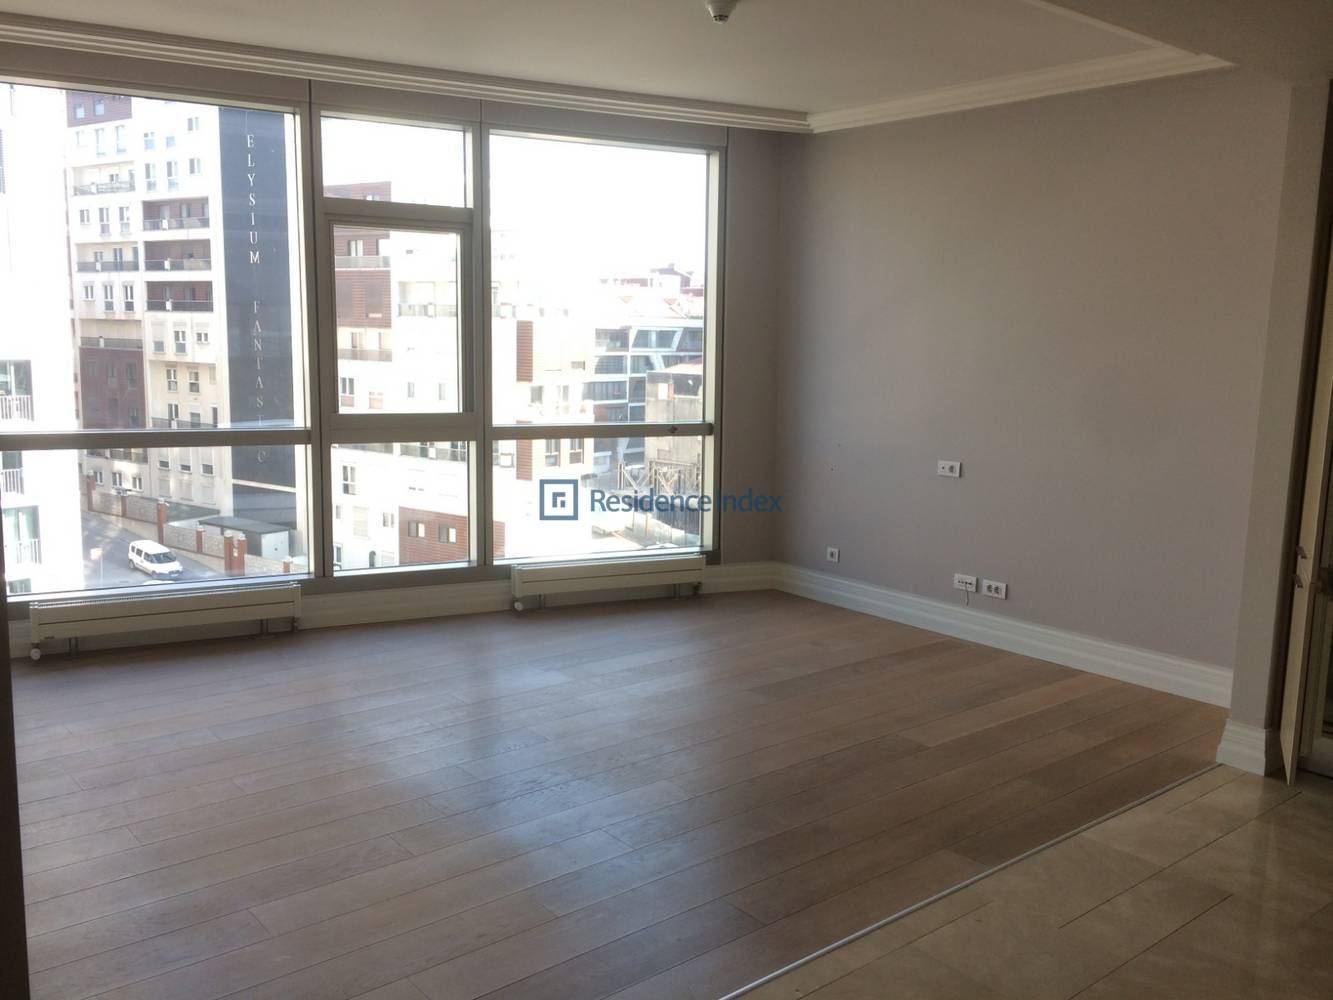 1 + 1 Residence Flat for Sale